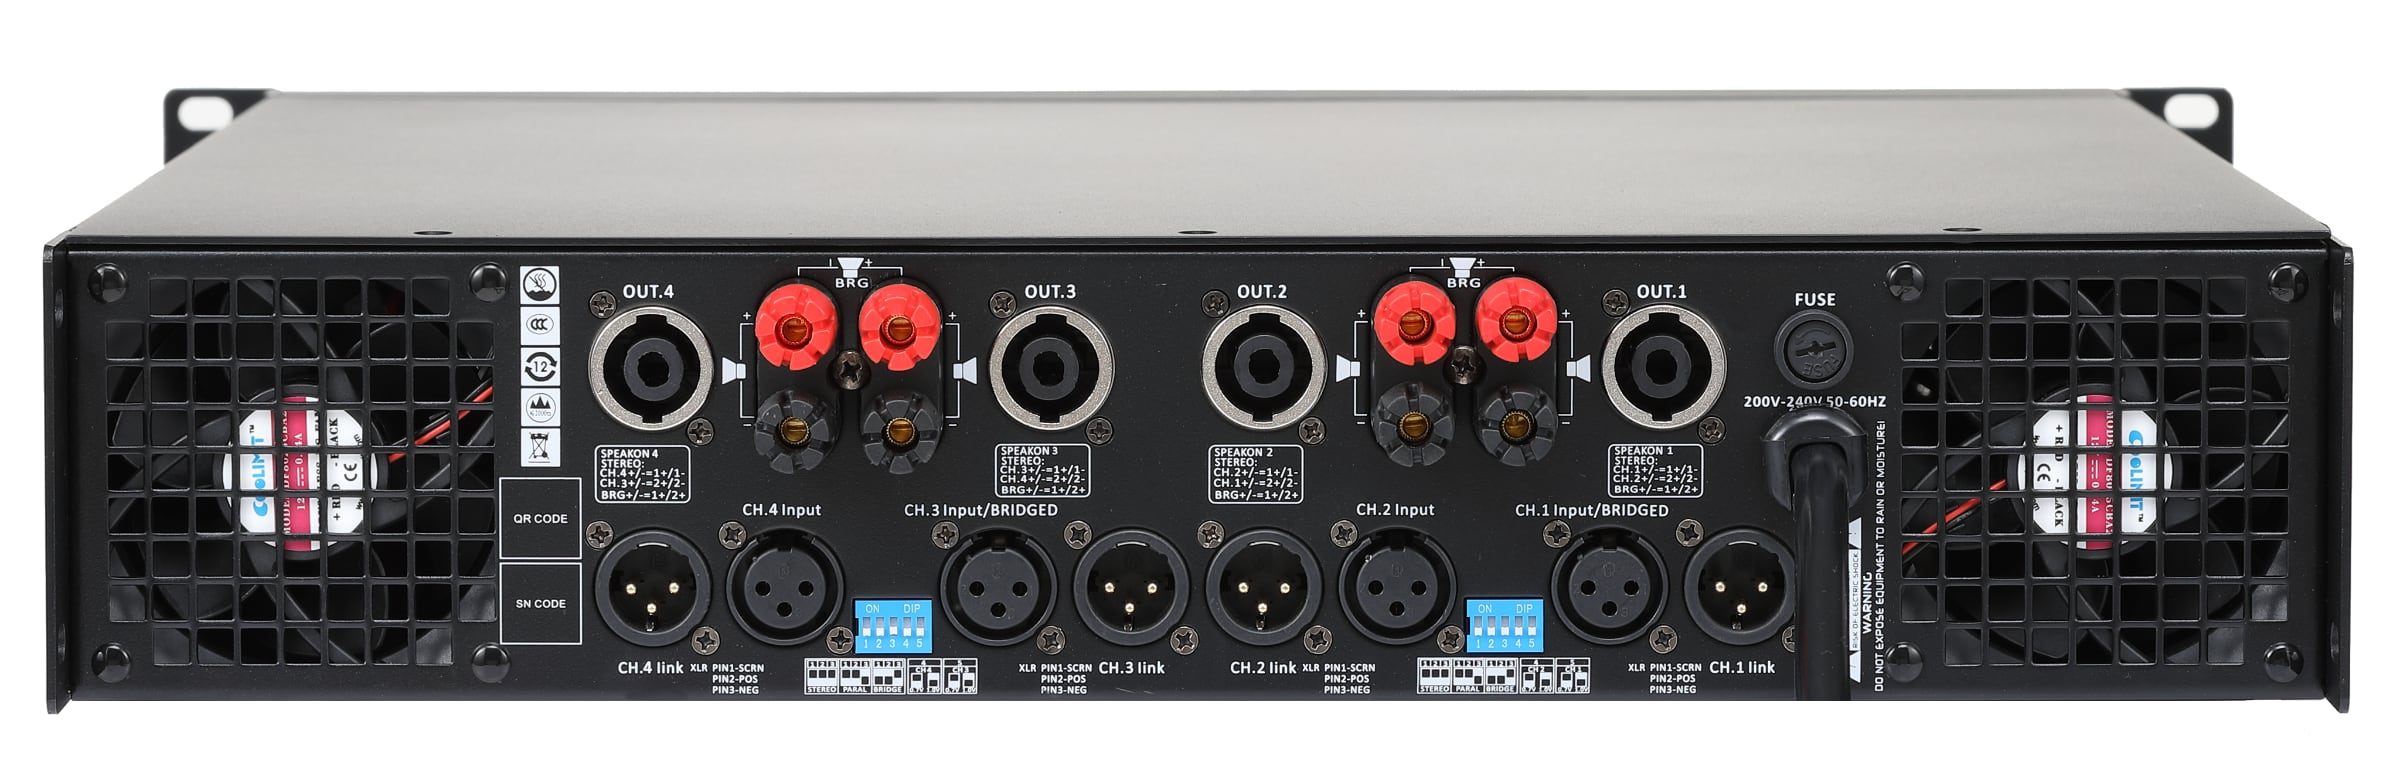 Công suất AAP DX-9004